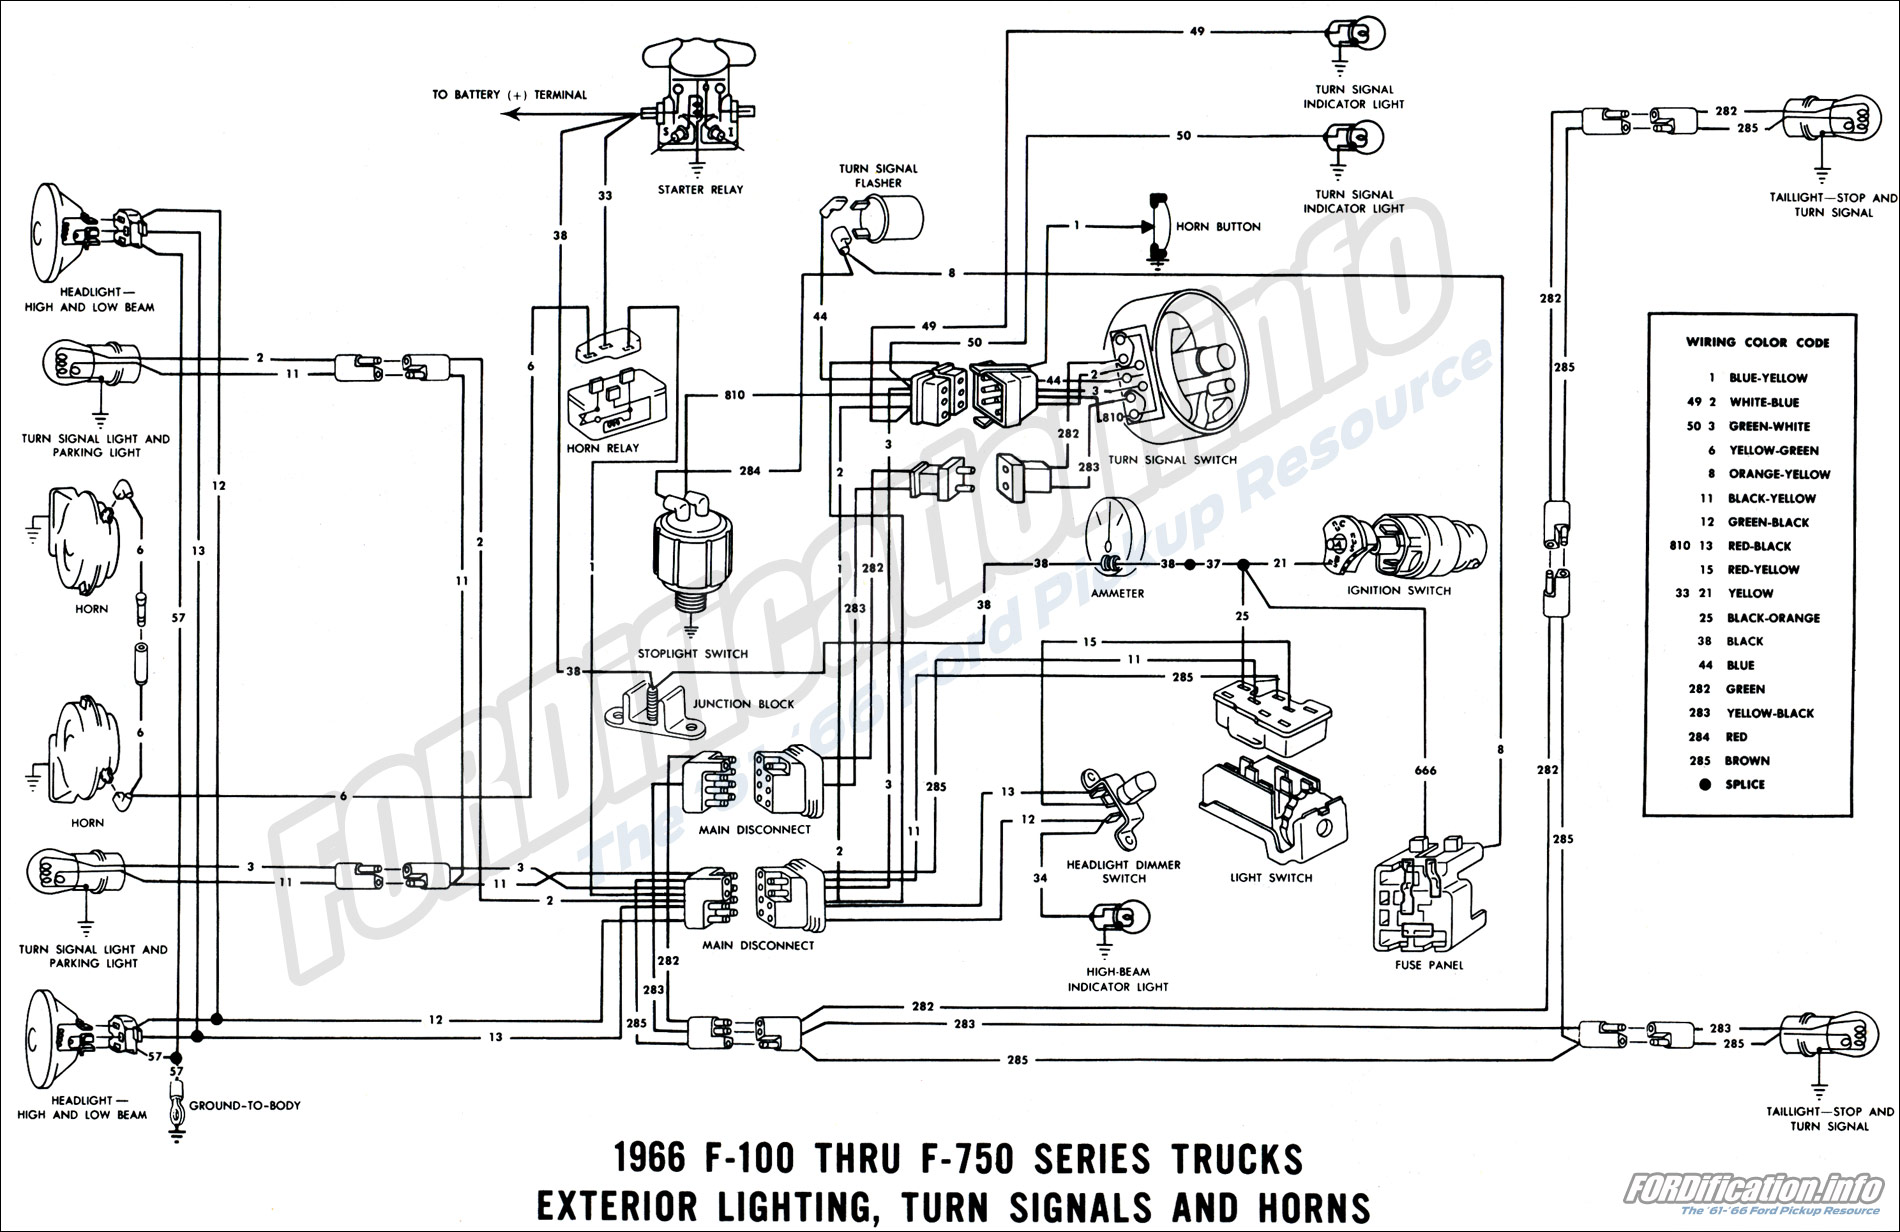 [SCHEMATICS_4HG]  1966 Ford Truck Wiring Diagrams - FORDification.info - The '61-'66 Ford  Pickup Resource | 1966 Ford F250 Wiring Diagram |  | FORDification.info